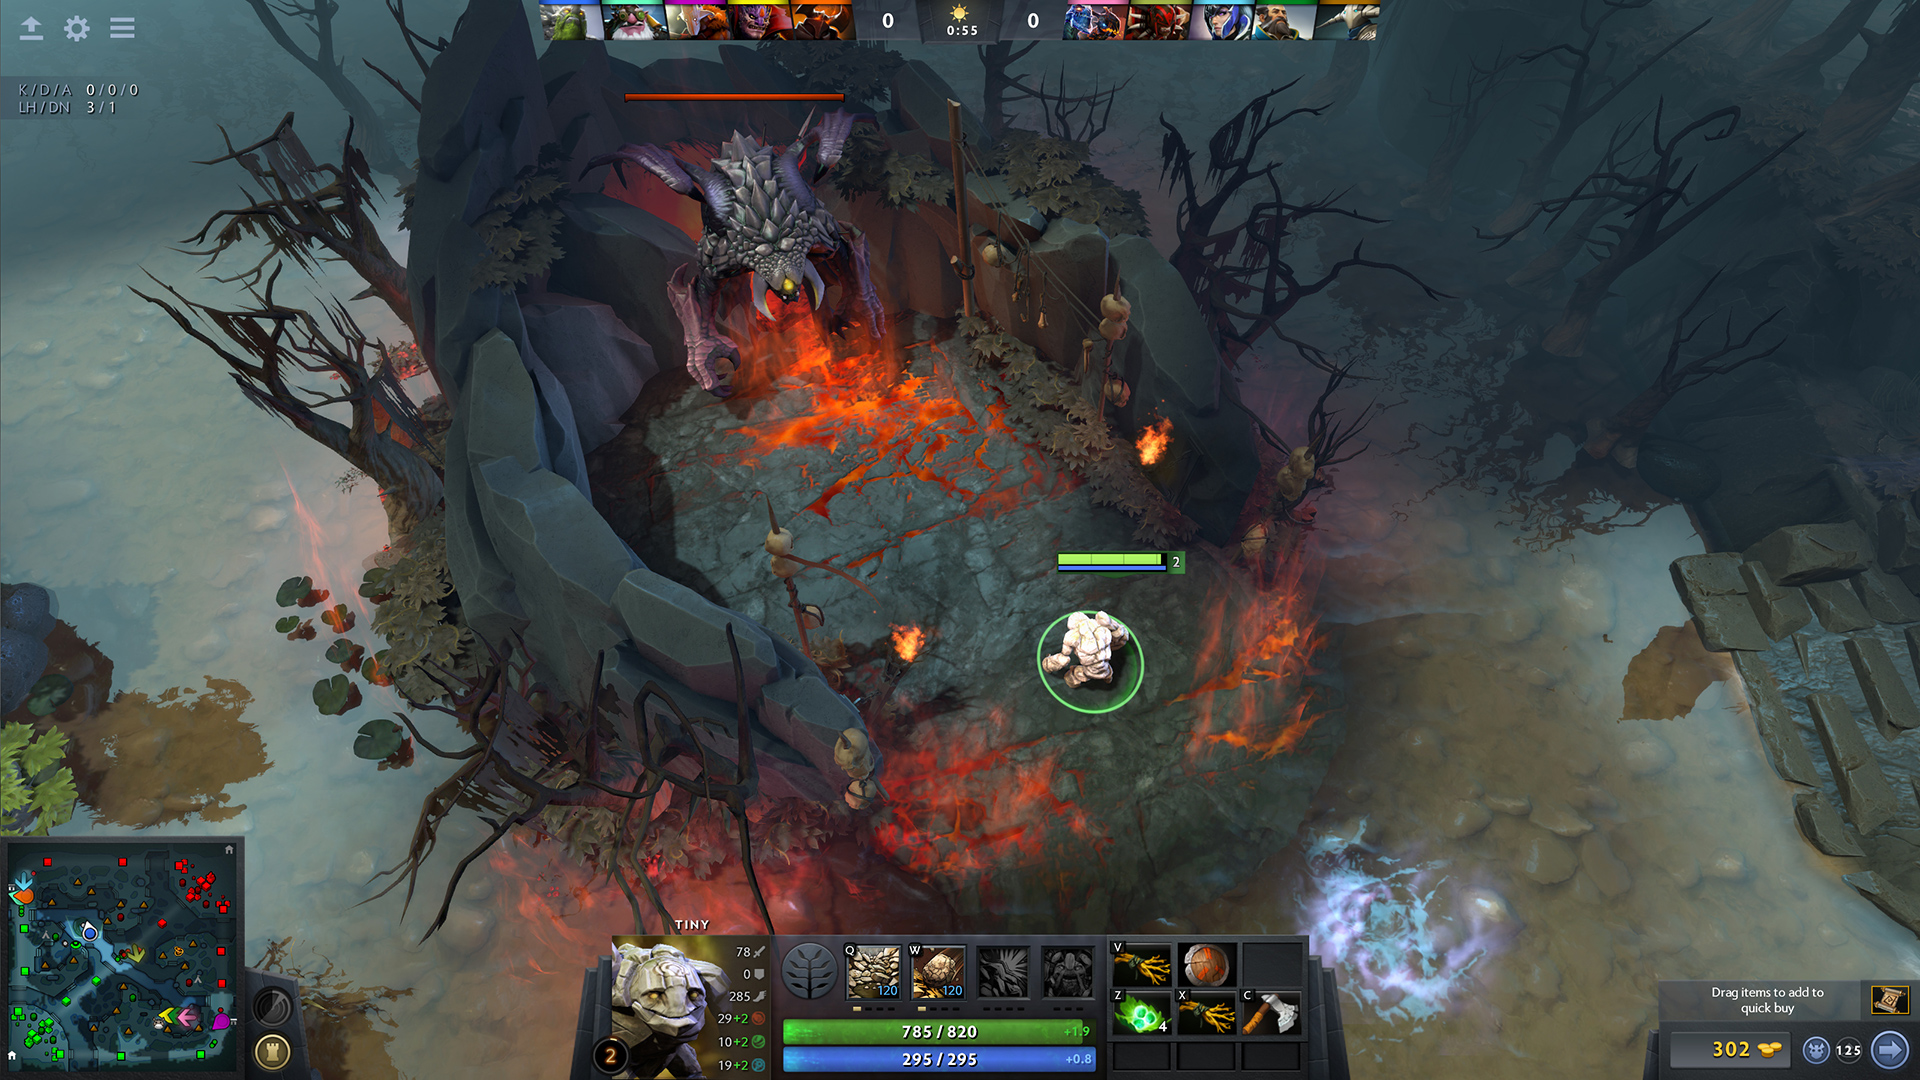 Dota 2 System Requirements - Can I Run It? - PCGameBenchmark